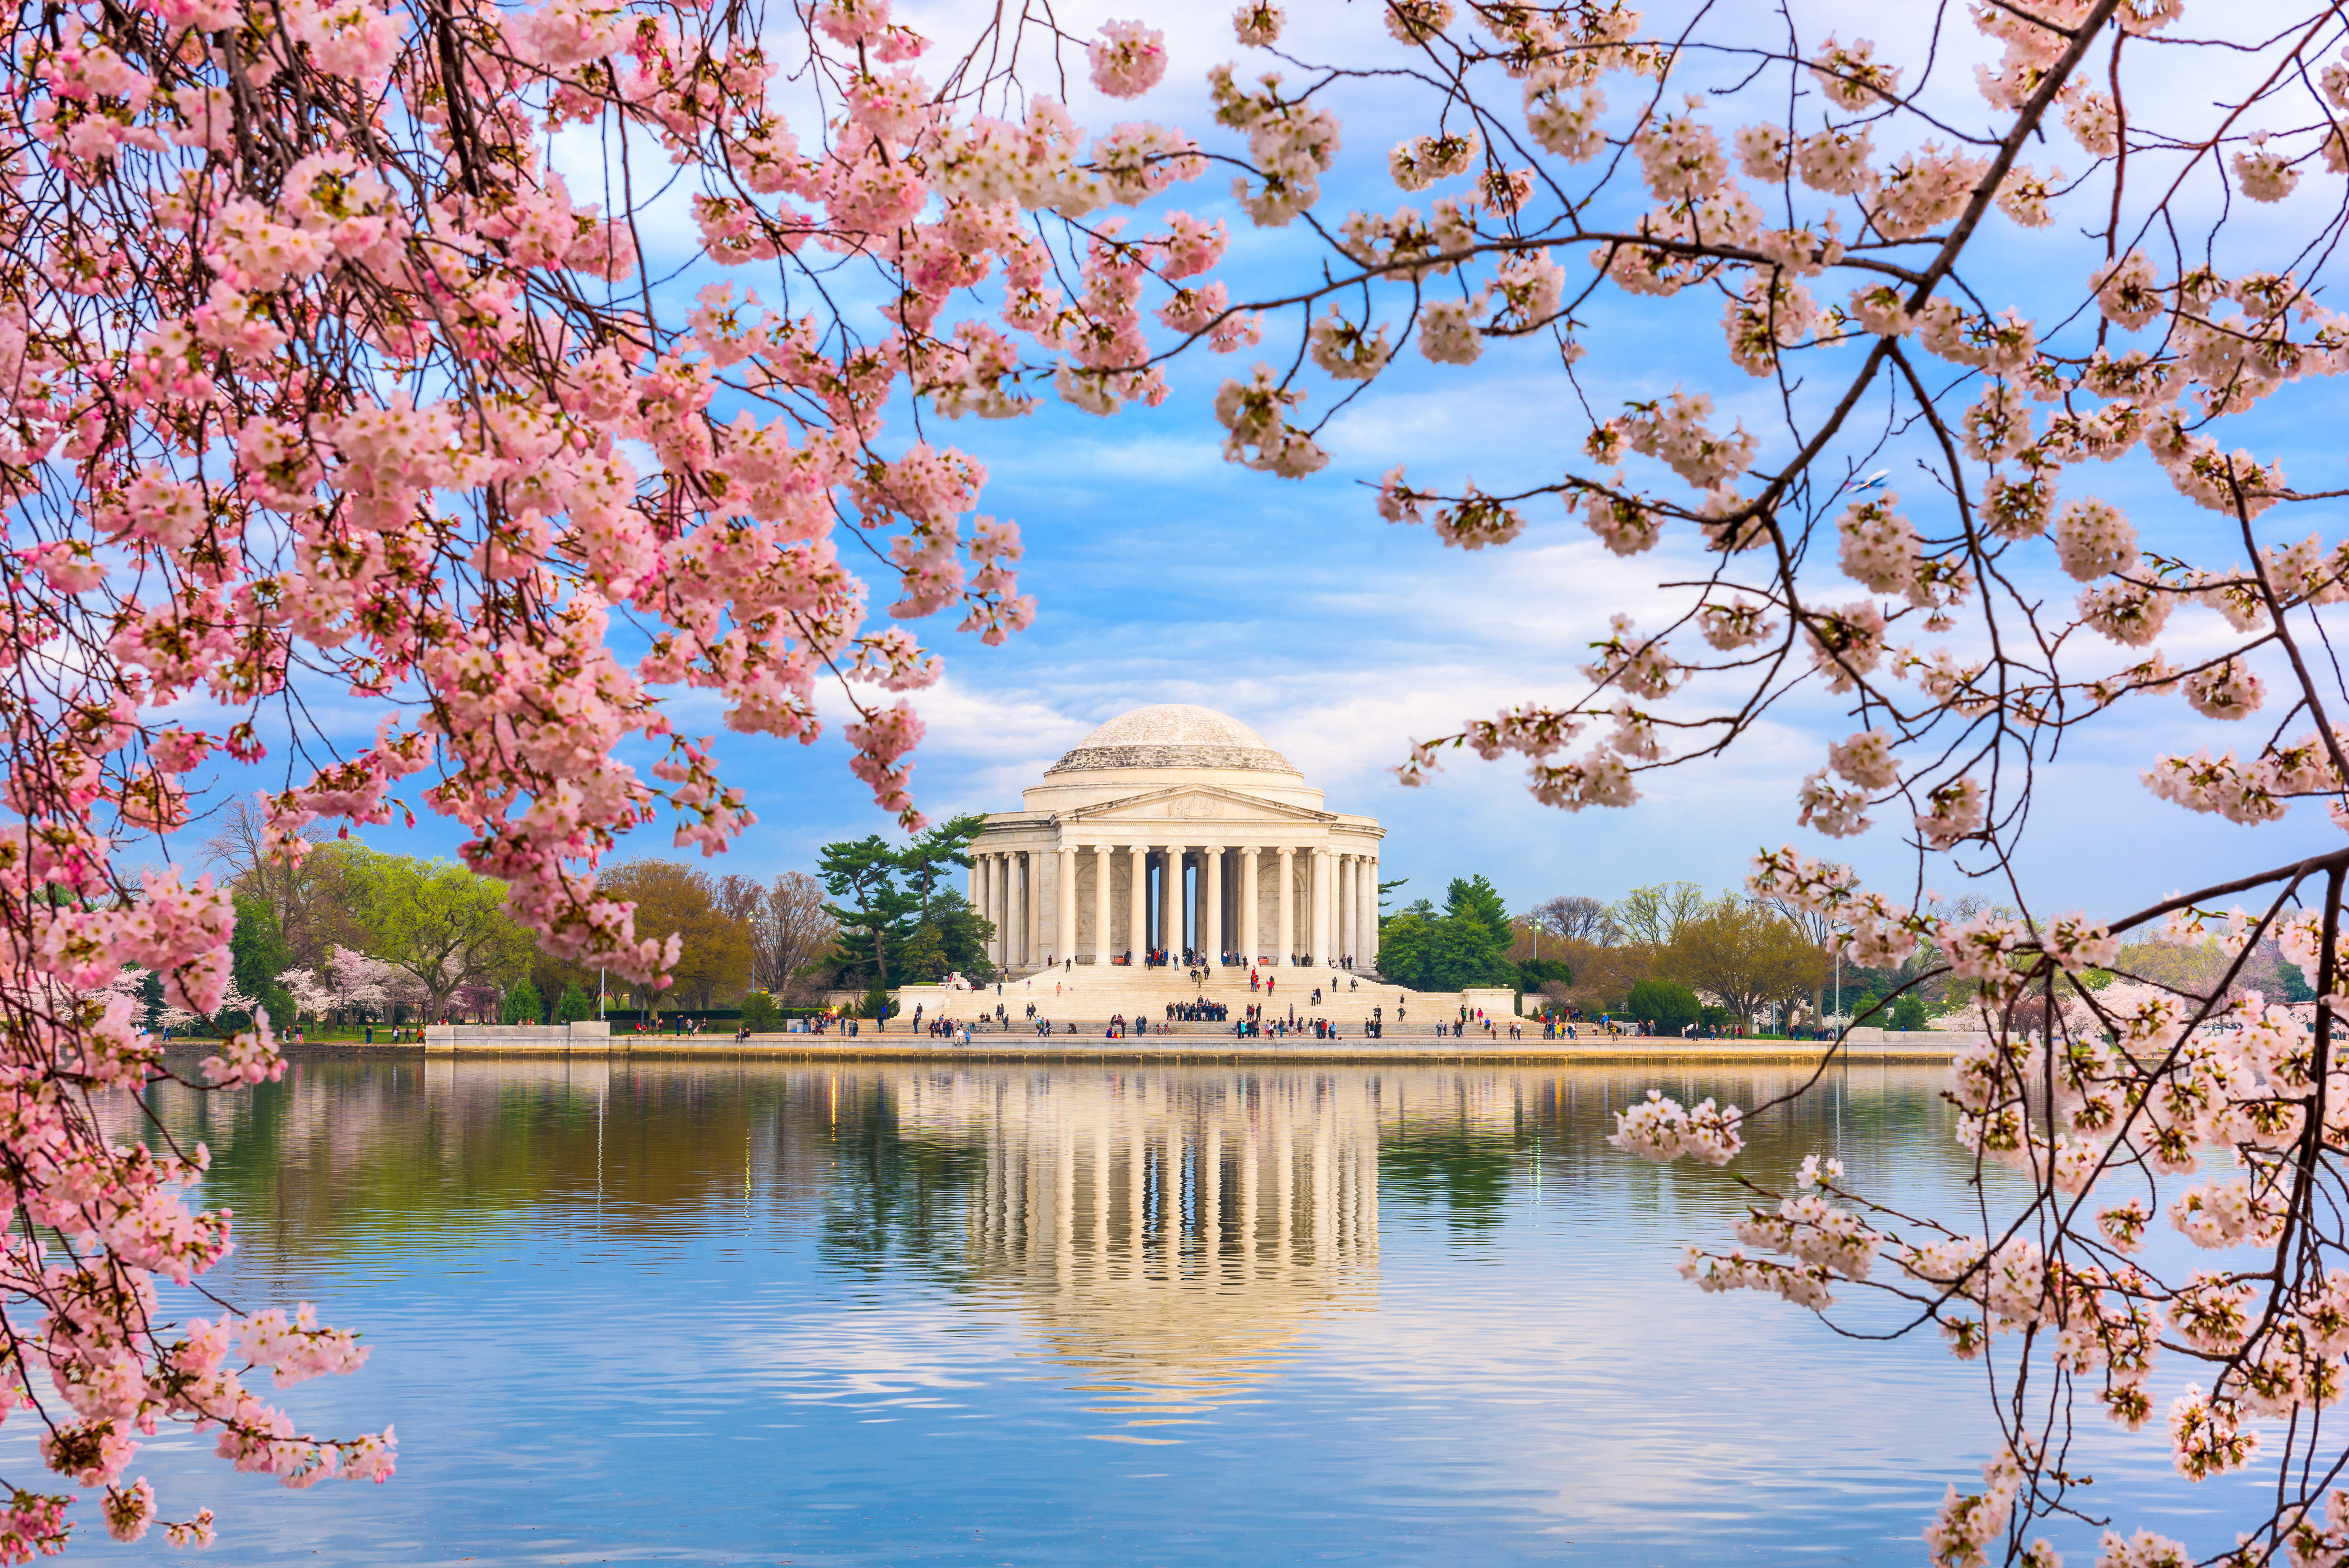 Cherry blossoms at the Thomas Jefferson Memorial